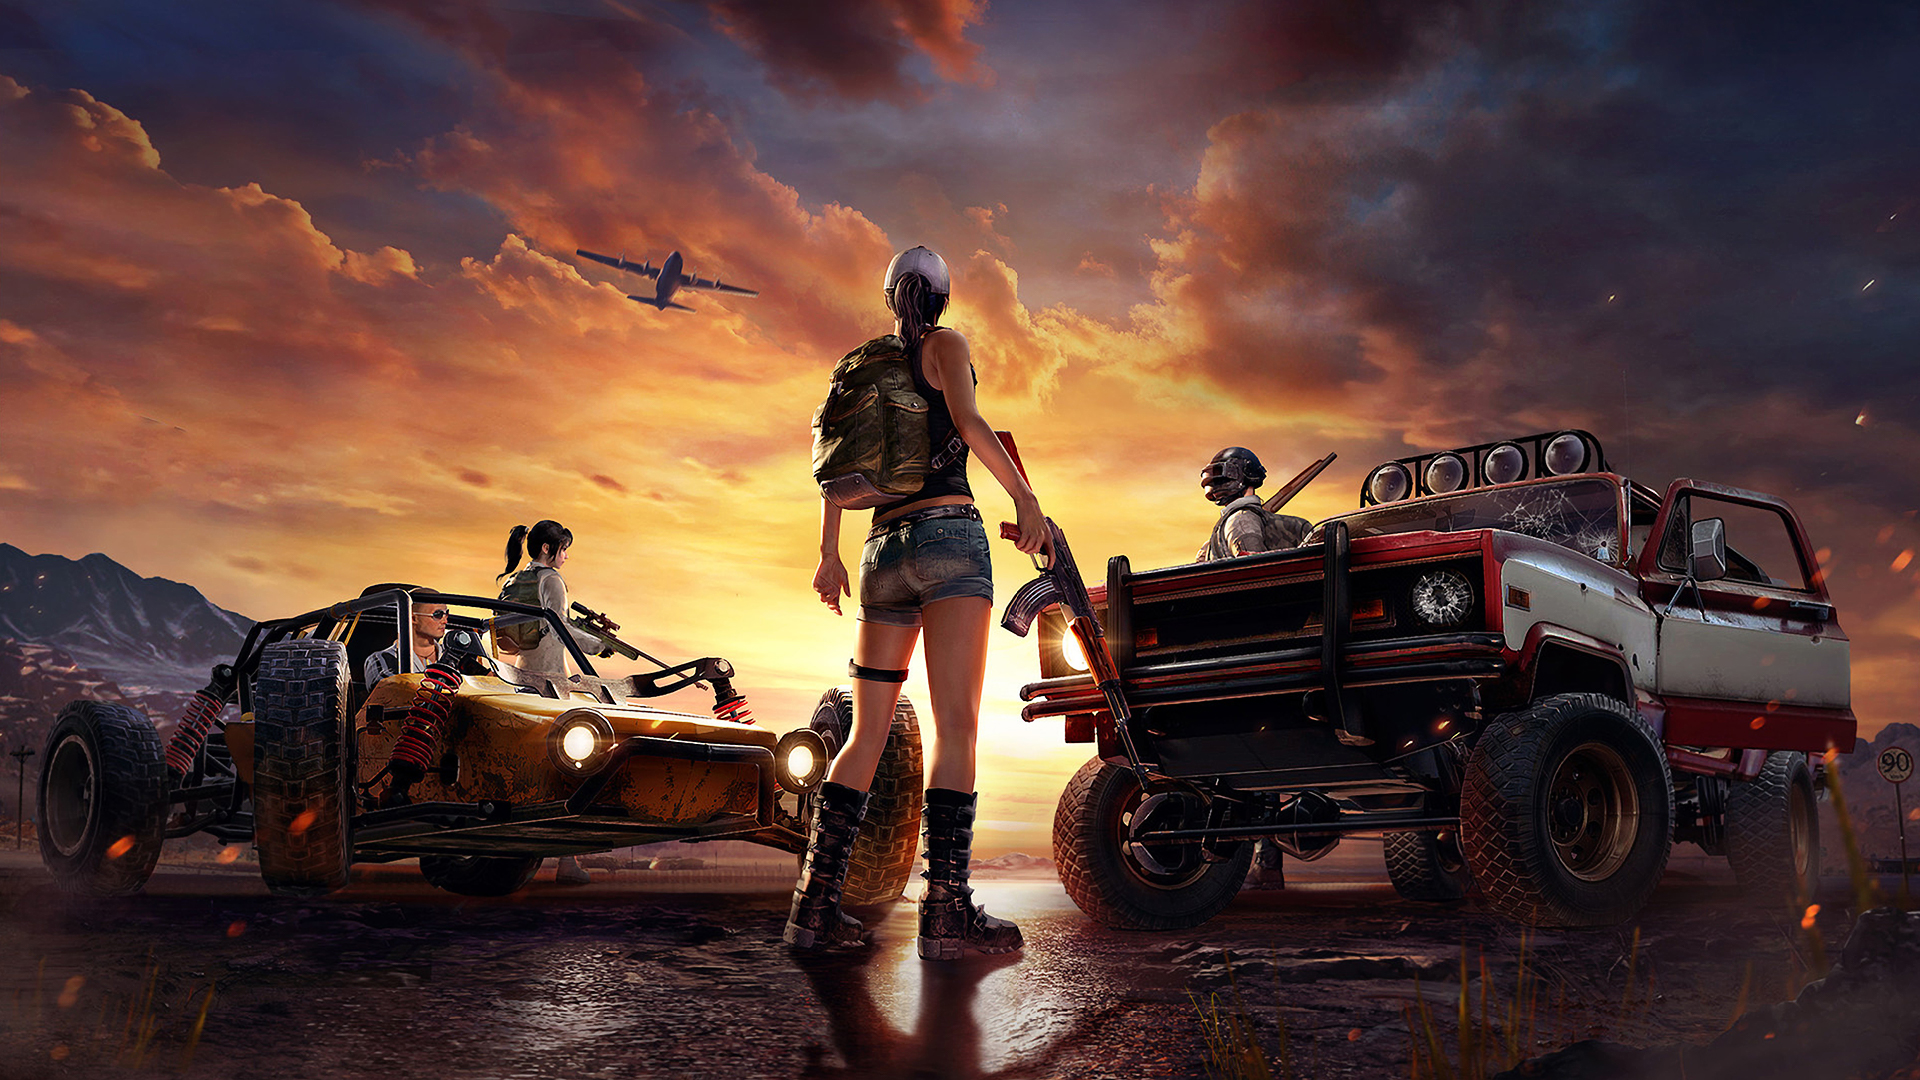 1920x1080 Pubg Characters 4k Laptop Full Hd 1080p Hd 4k: 1920x1080 PlayerUnknowns Battlegrounds Art Laptop Full HD